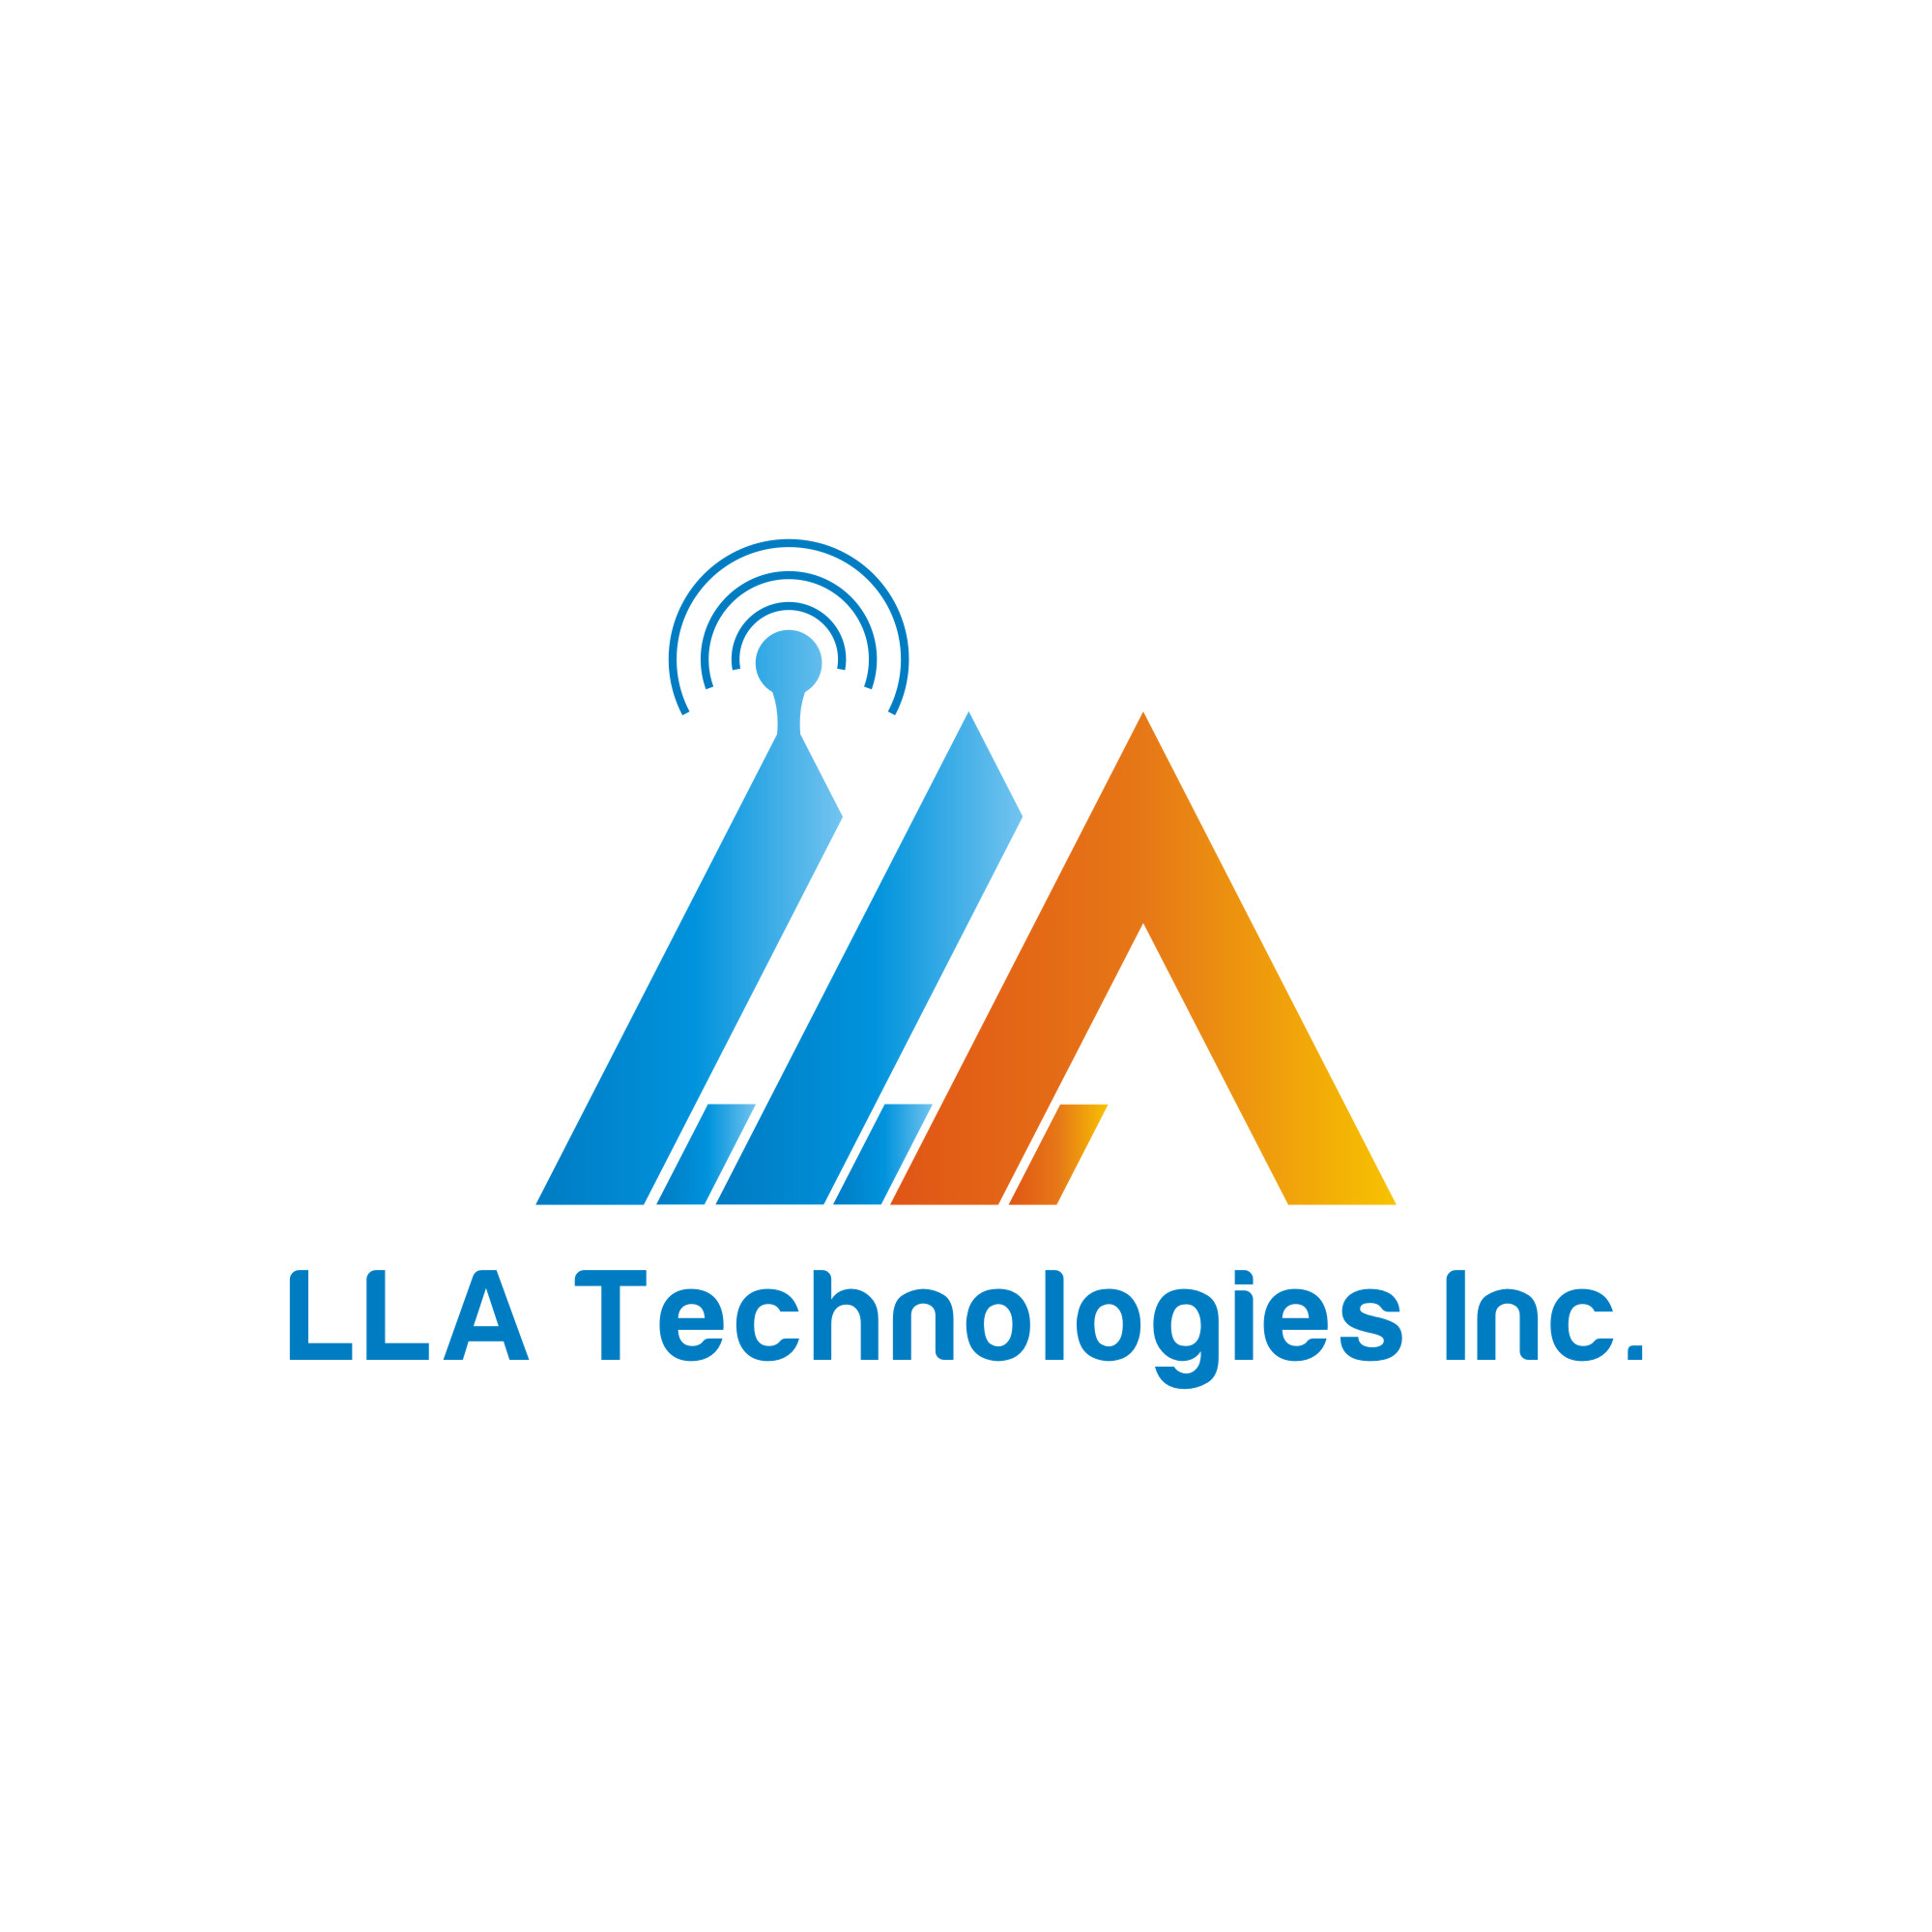 Logo Design by Orphan Suhendru - Entry No. 121 in the Logo Design Contest Inspiring Logo Design for LLA Technologies Inc..